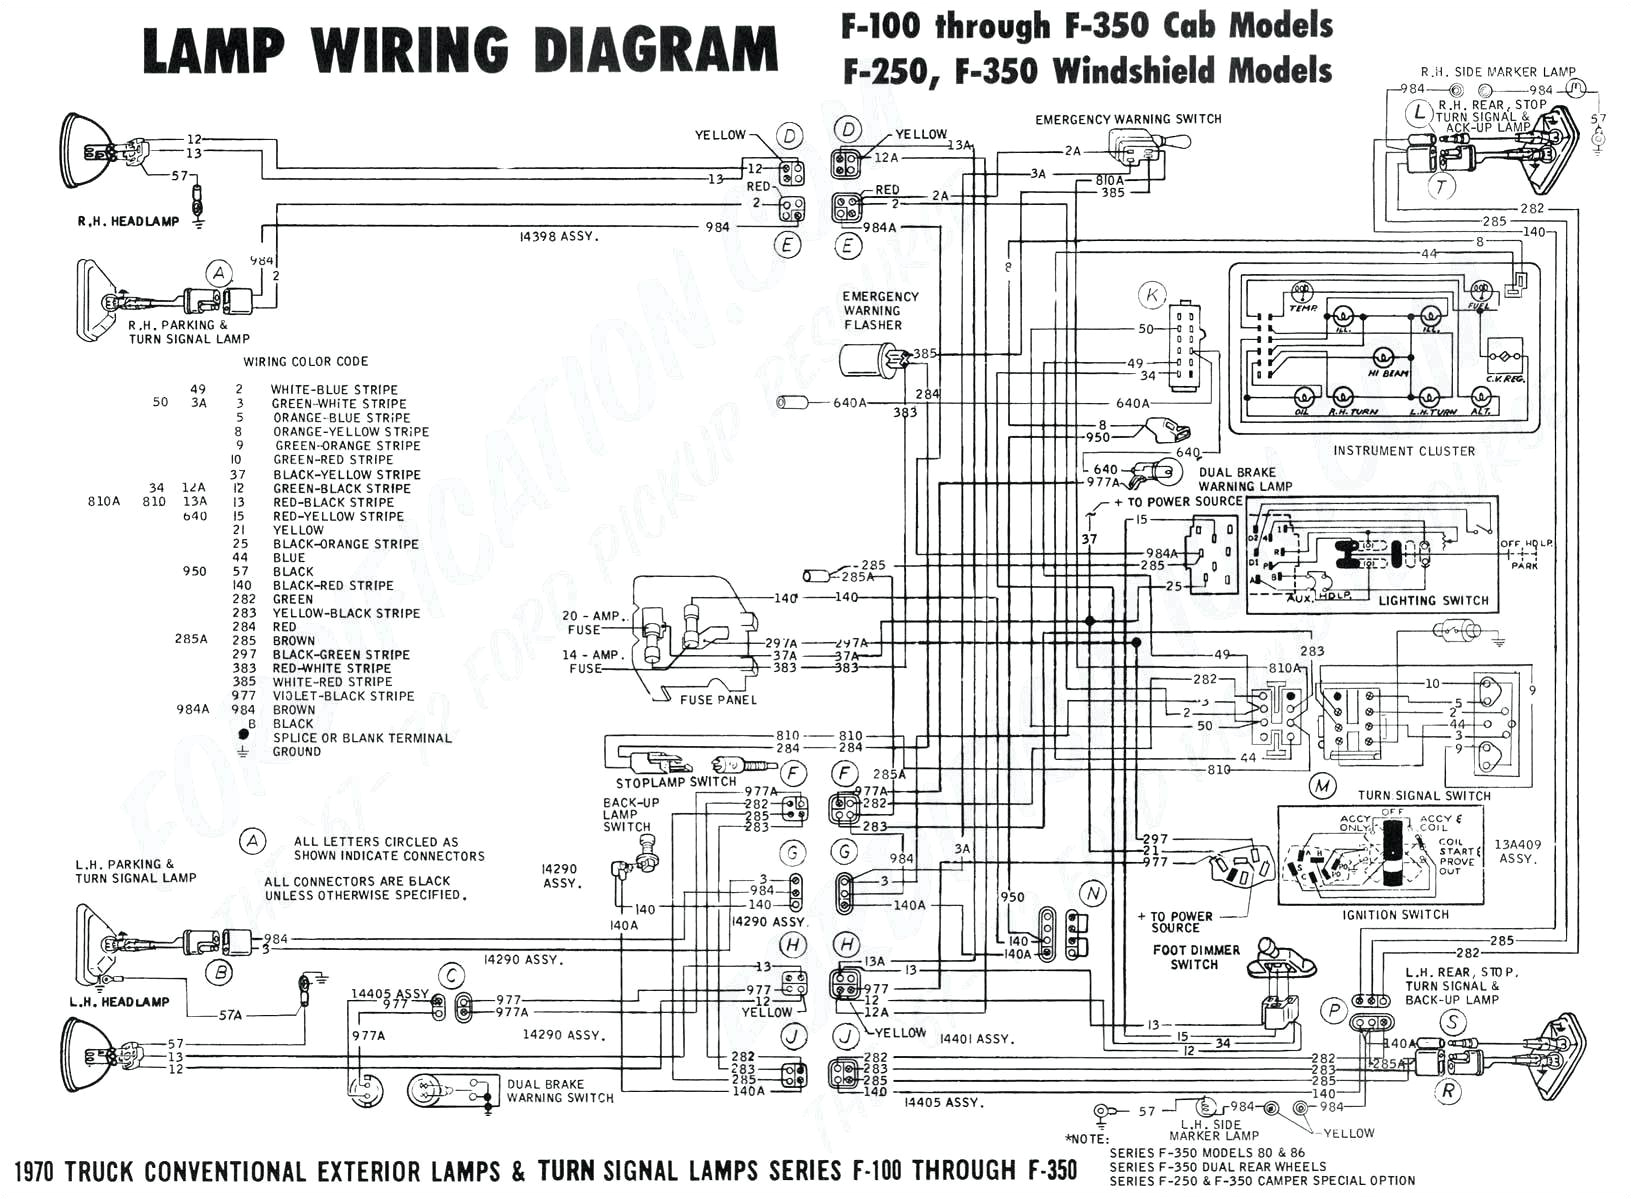 back to post wiring diagram avr sx440